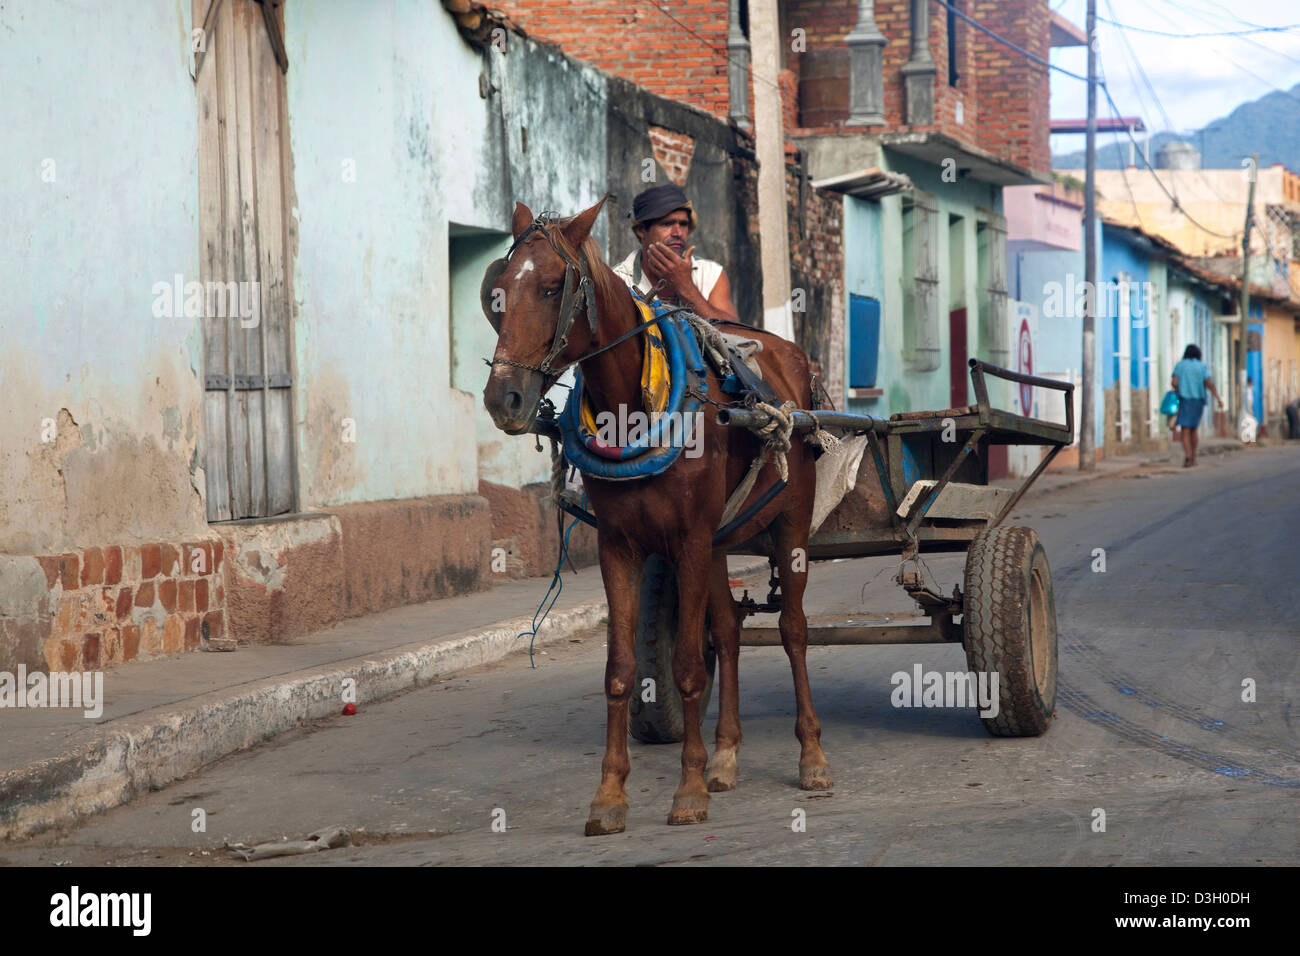 Horse pulling cart in the streets of Trinidad, Cuba, Caribbean - Stock Image